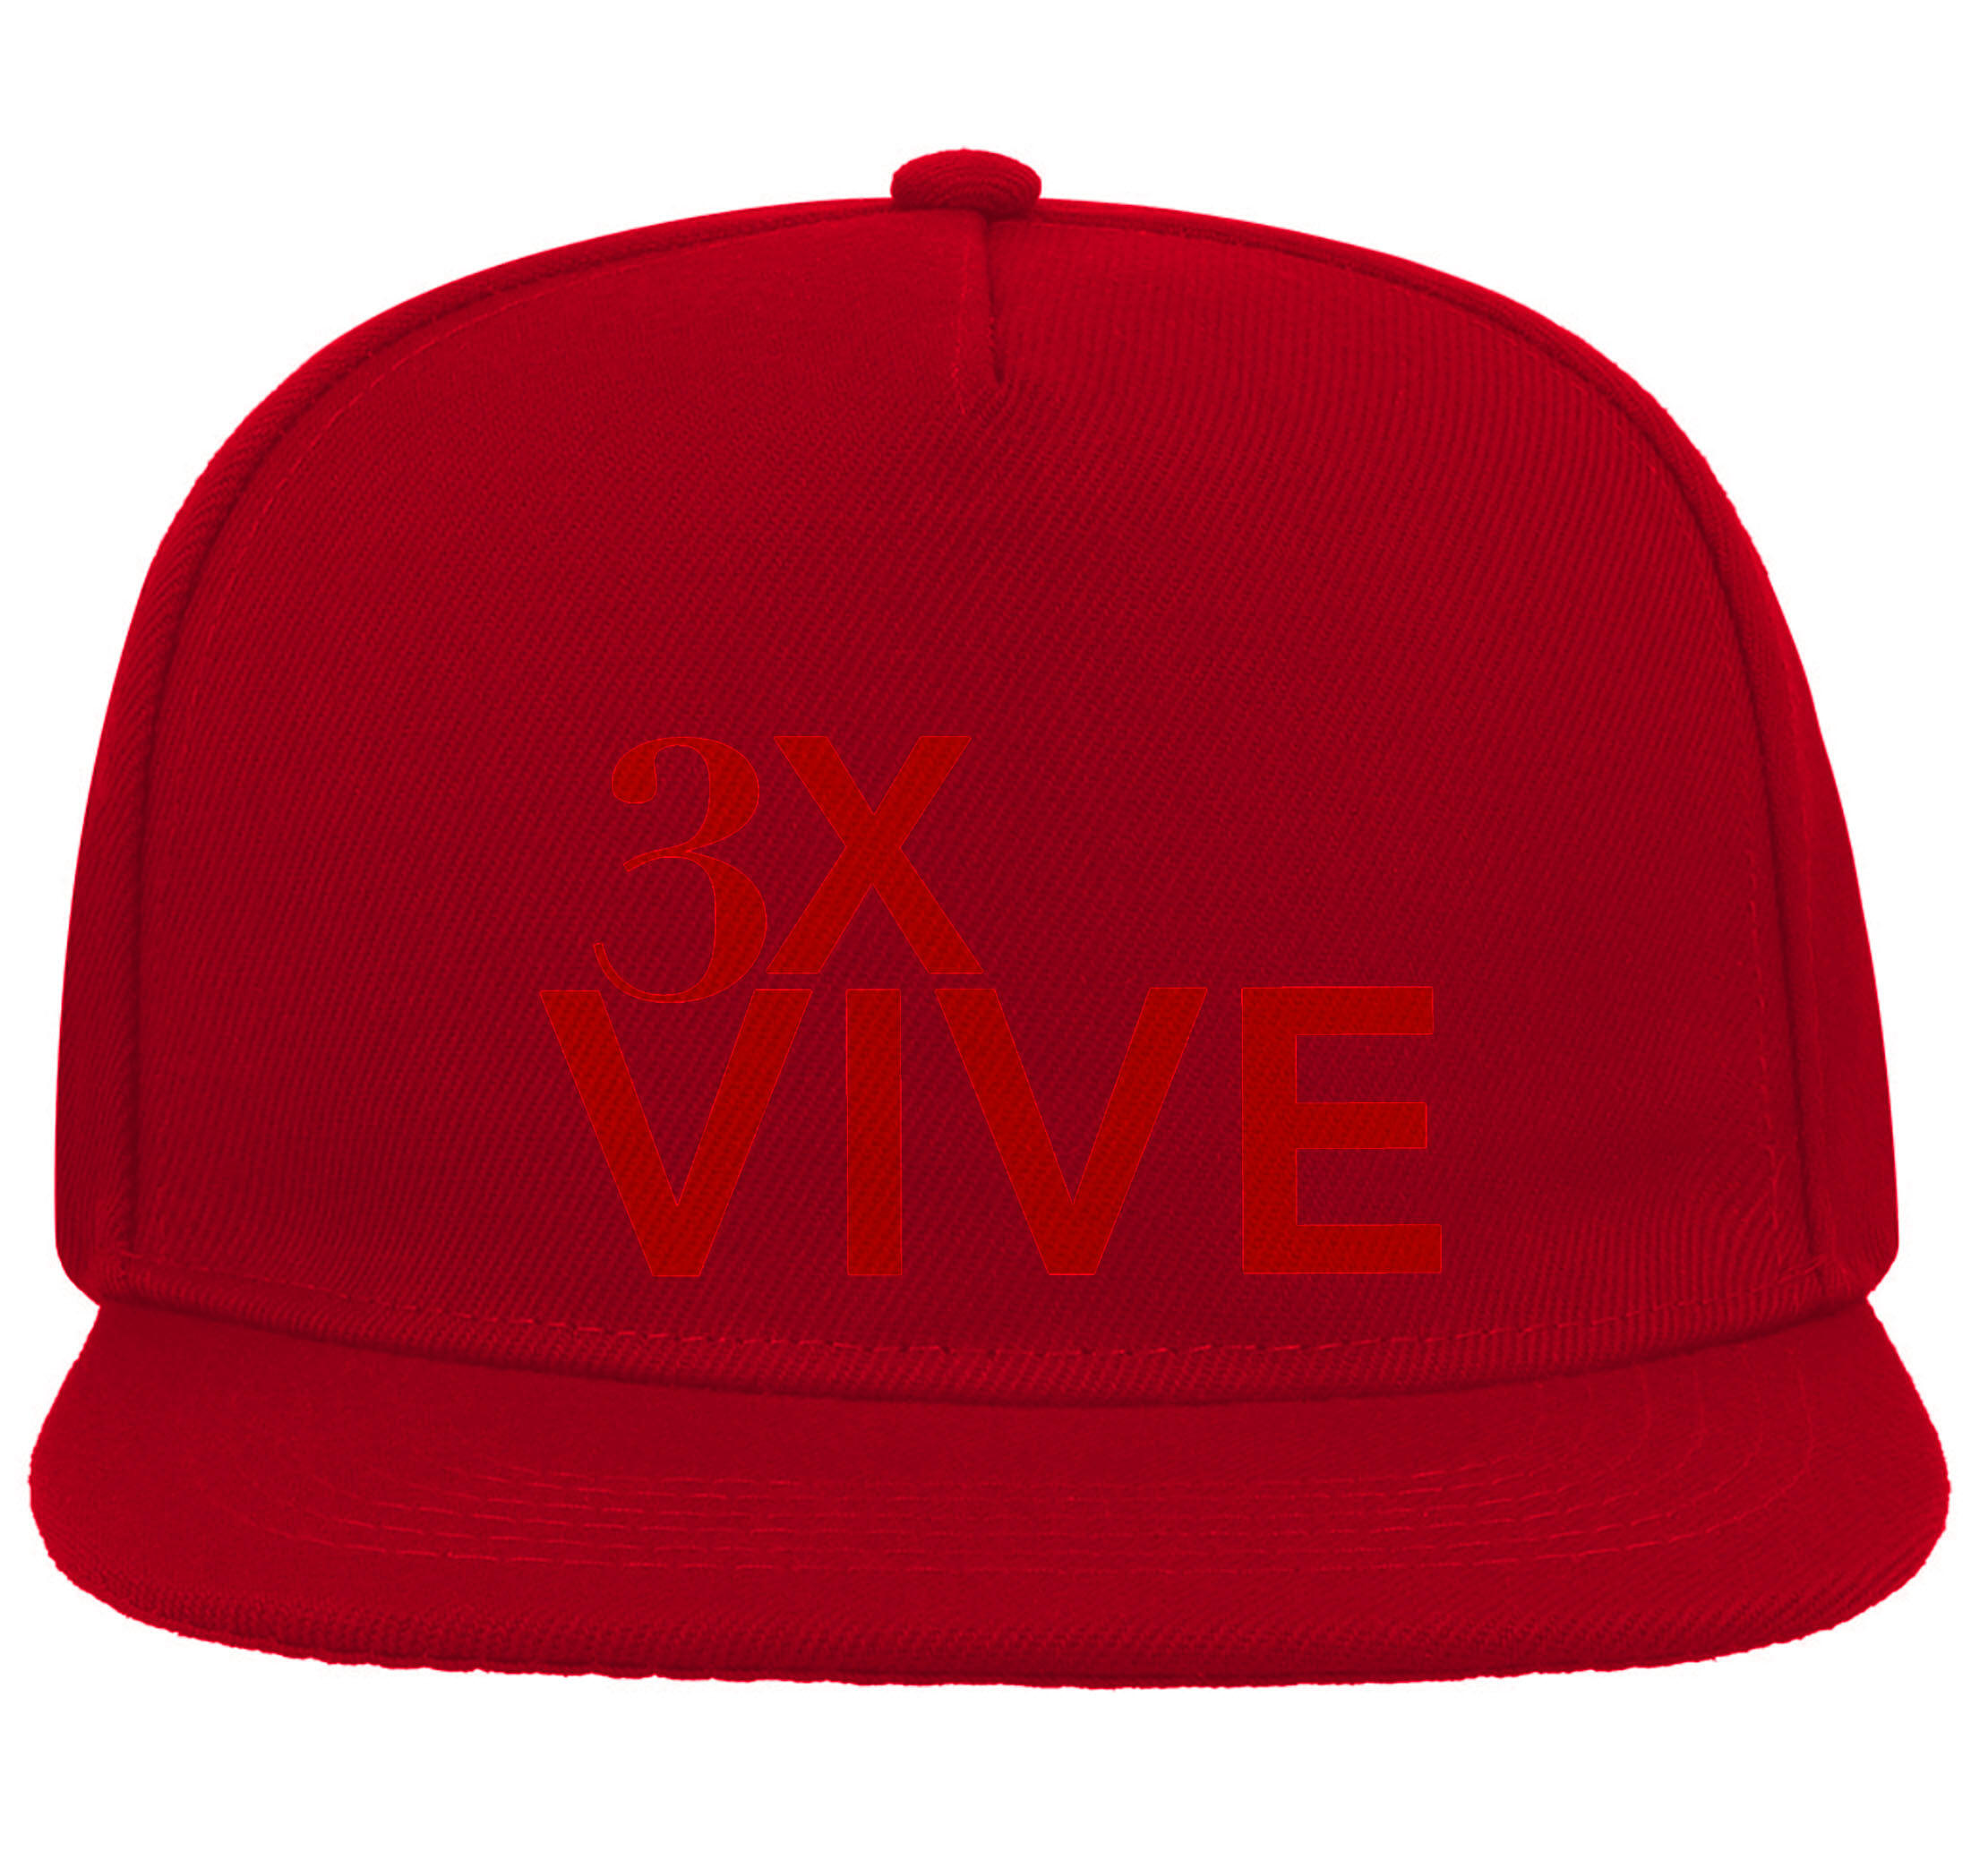 CASQUETTE ROUGE 3XVIVE